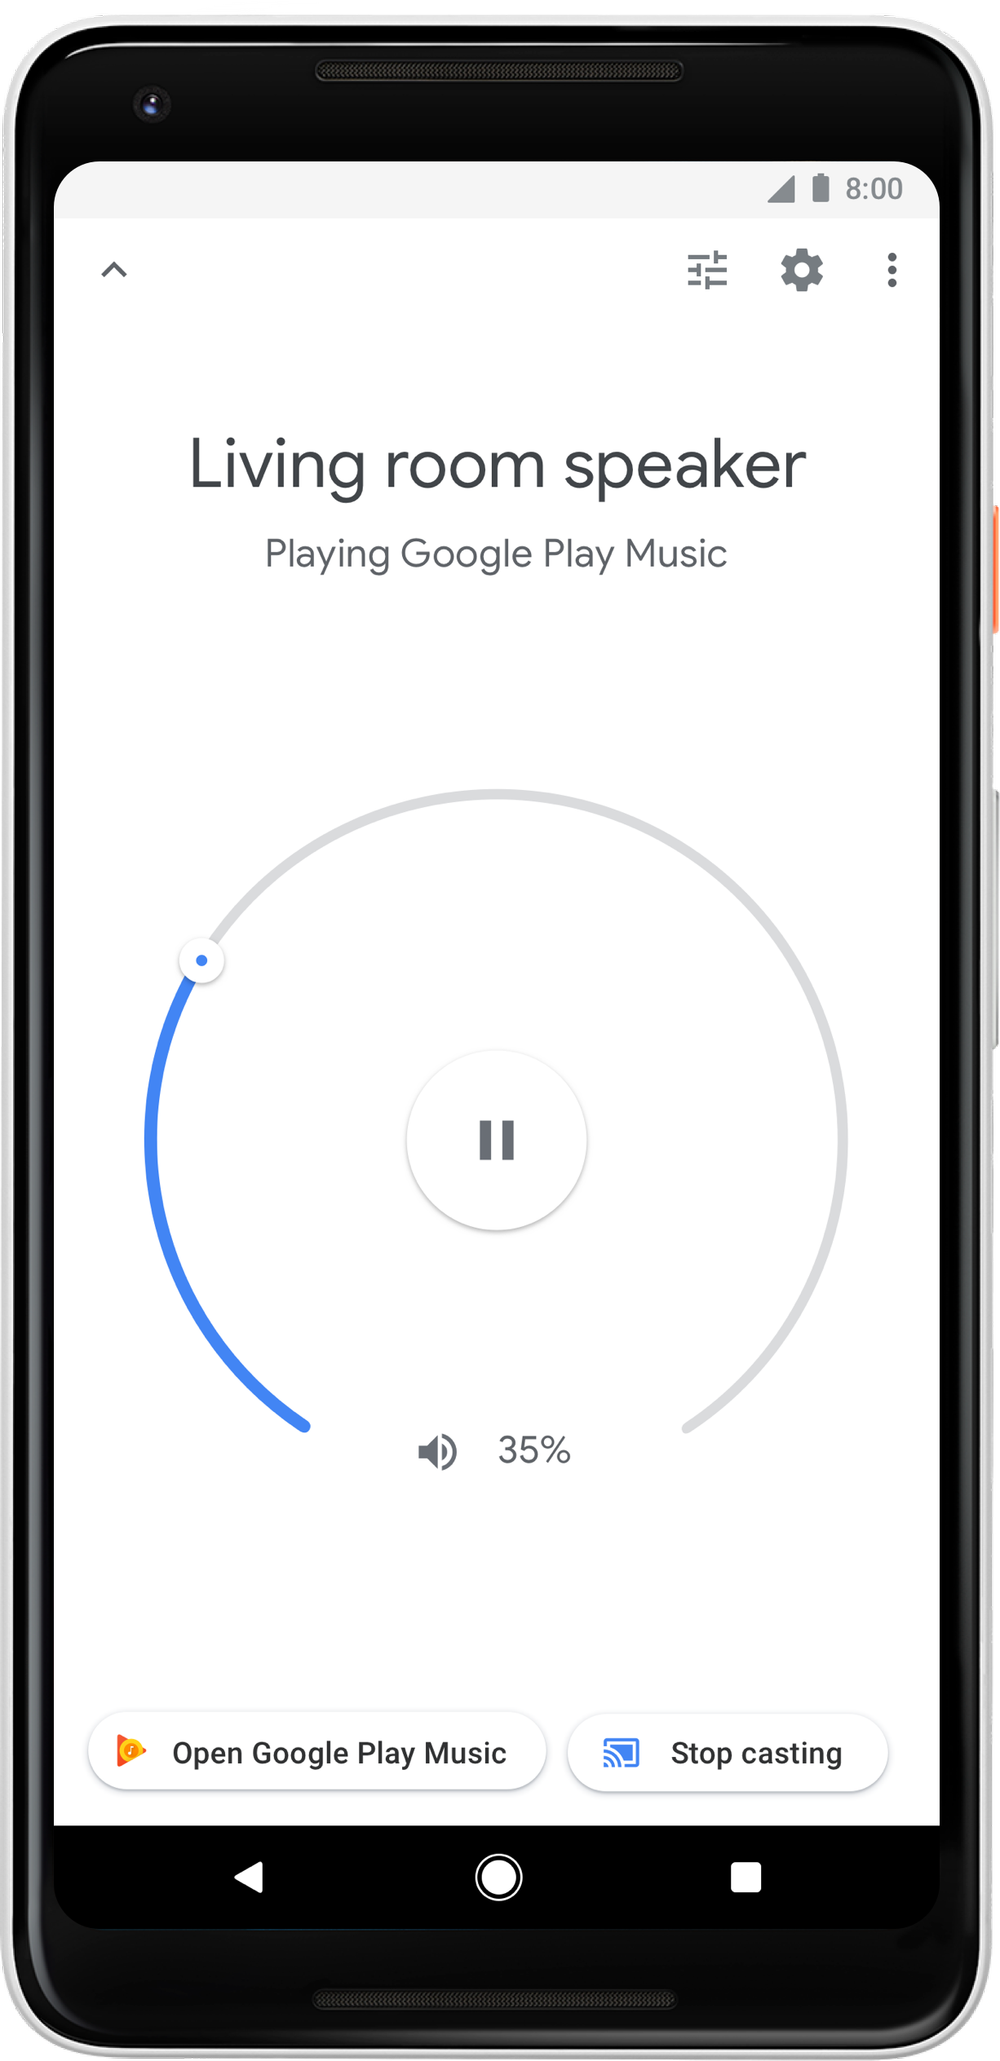 The Google Home app retains getting higher